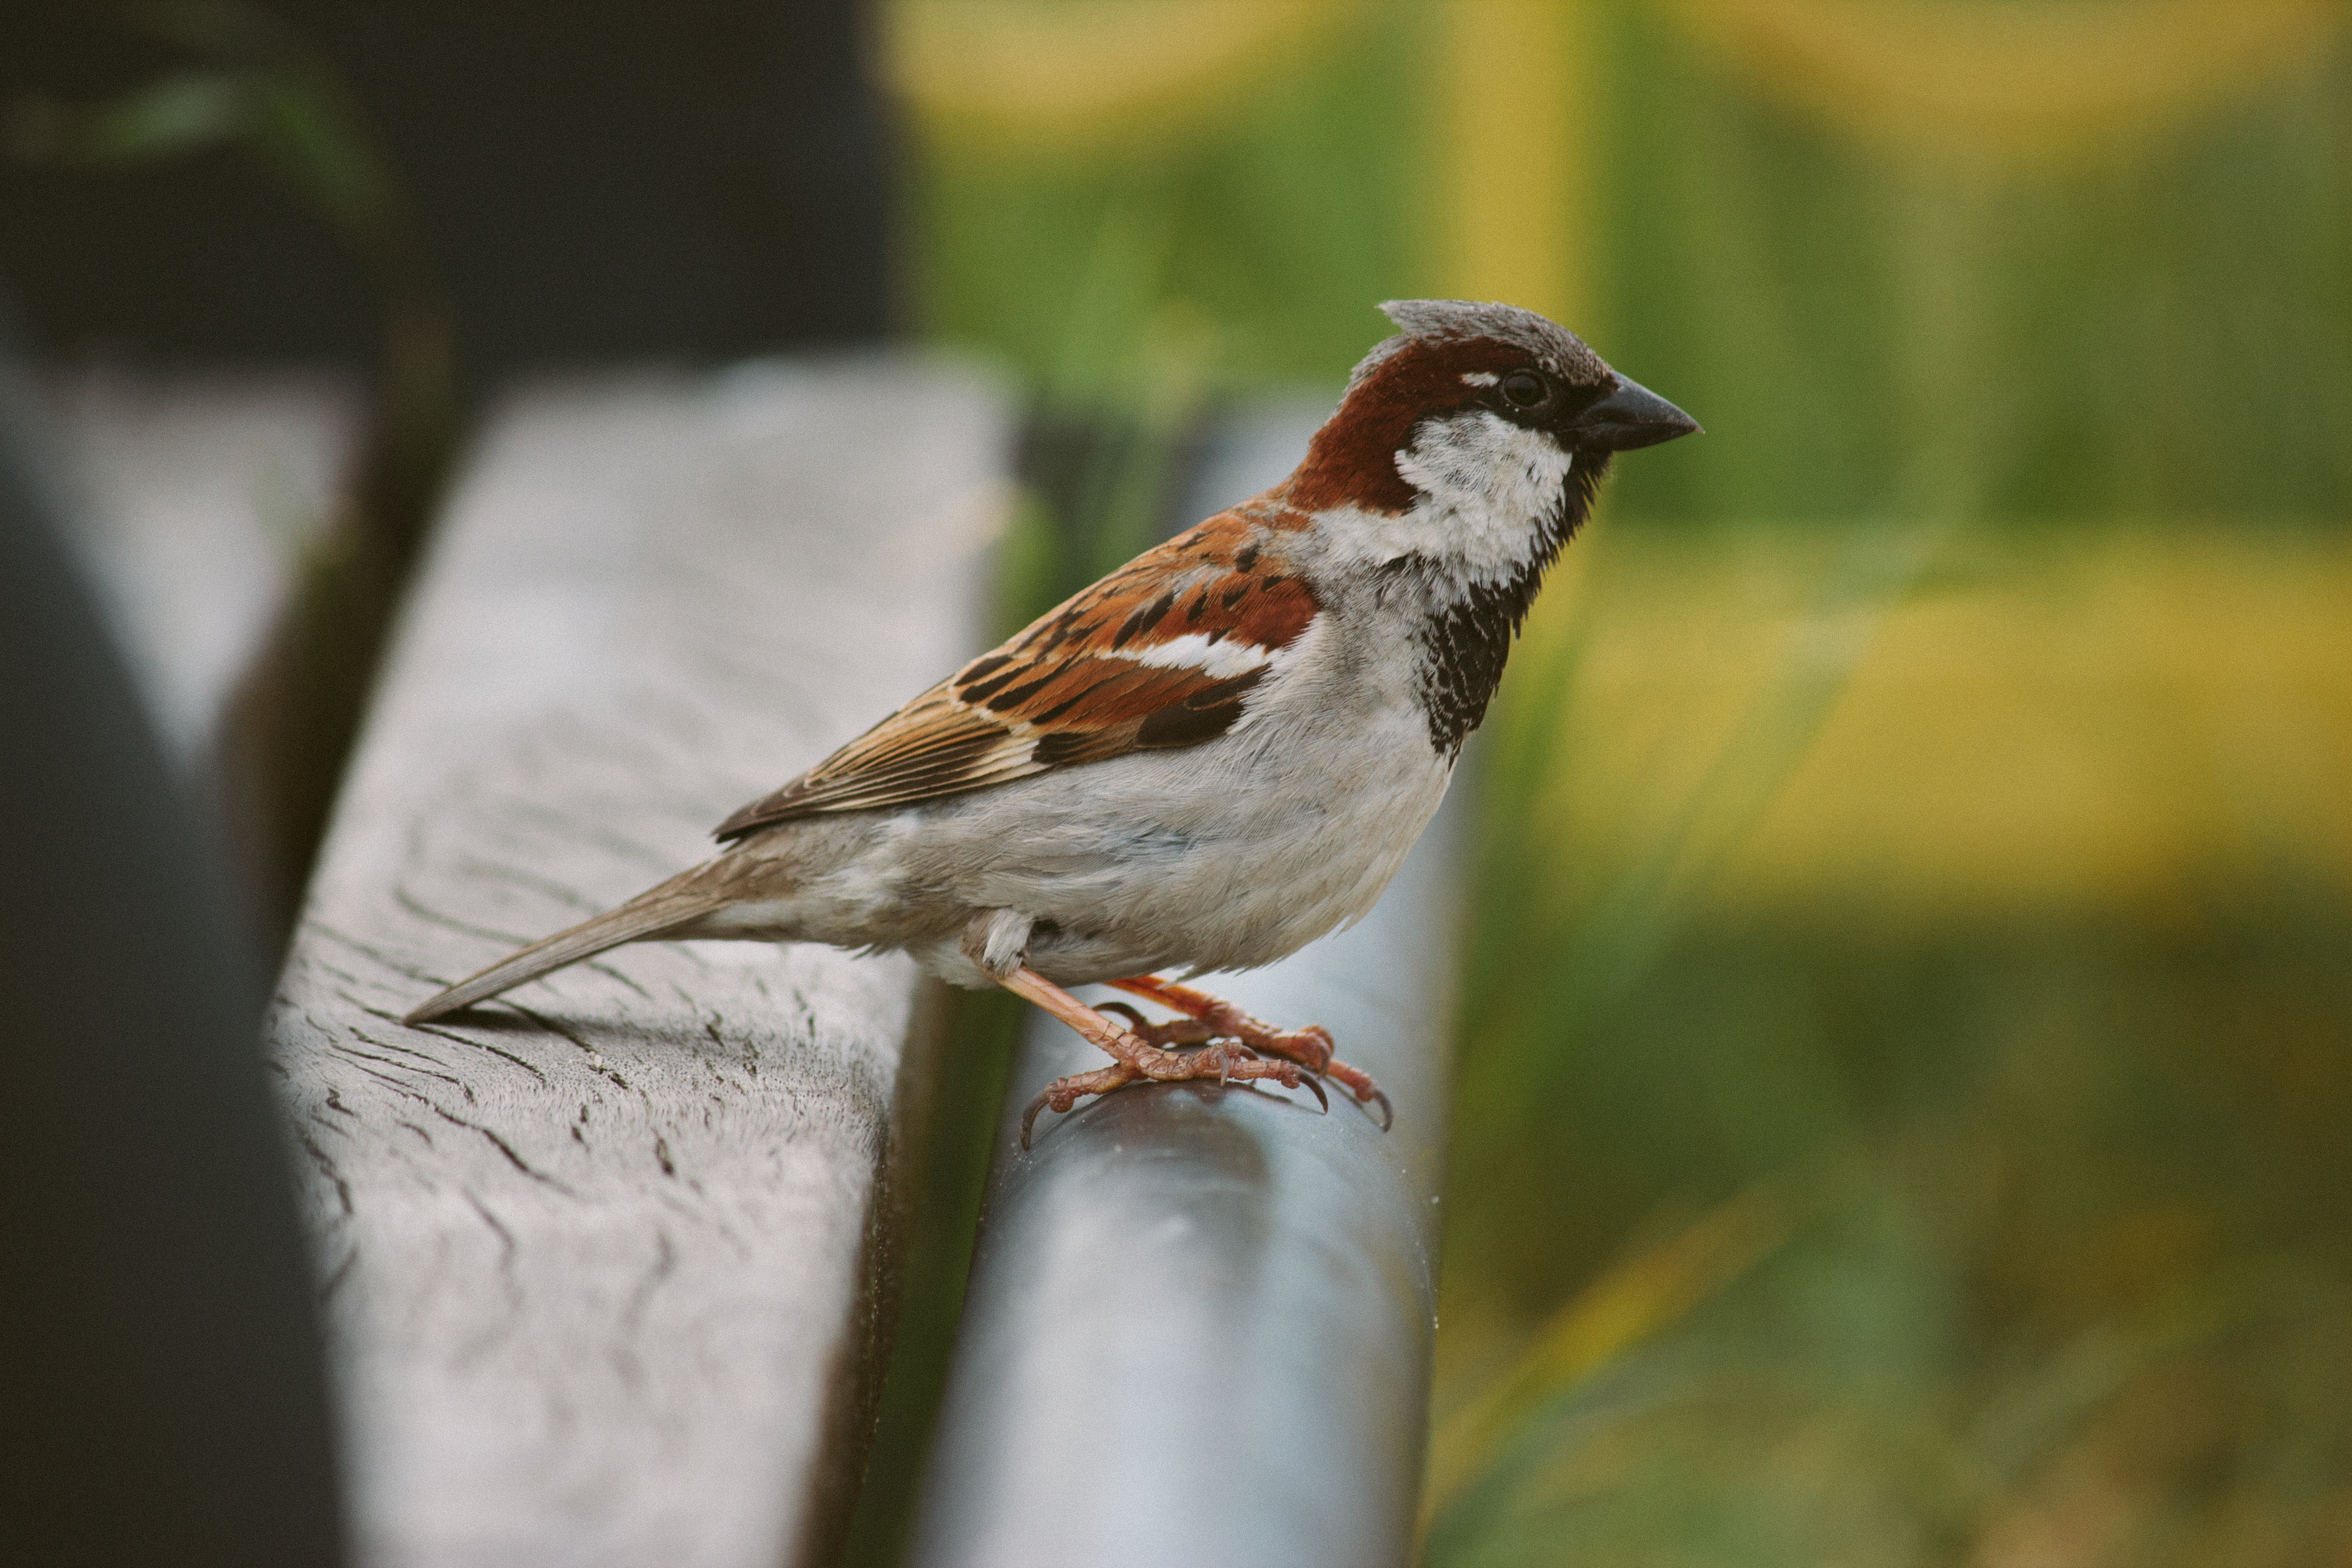 Sparrow Perched on Bench, Animal, Nature, Wildlife, Wild, HQ Photo